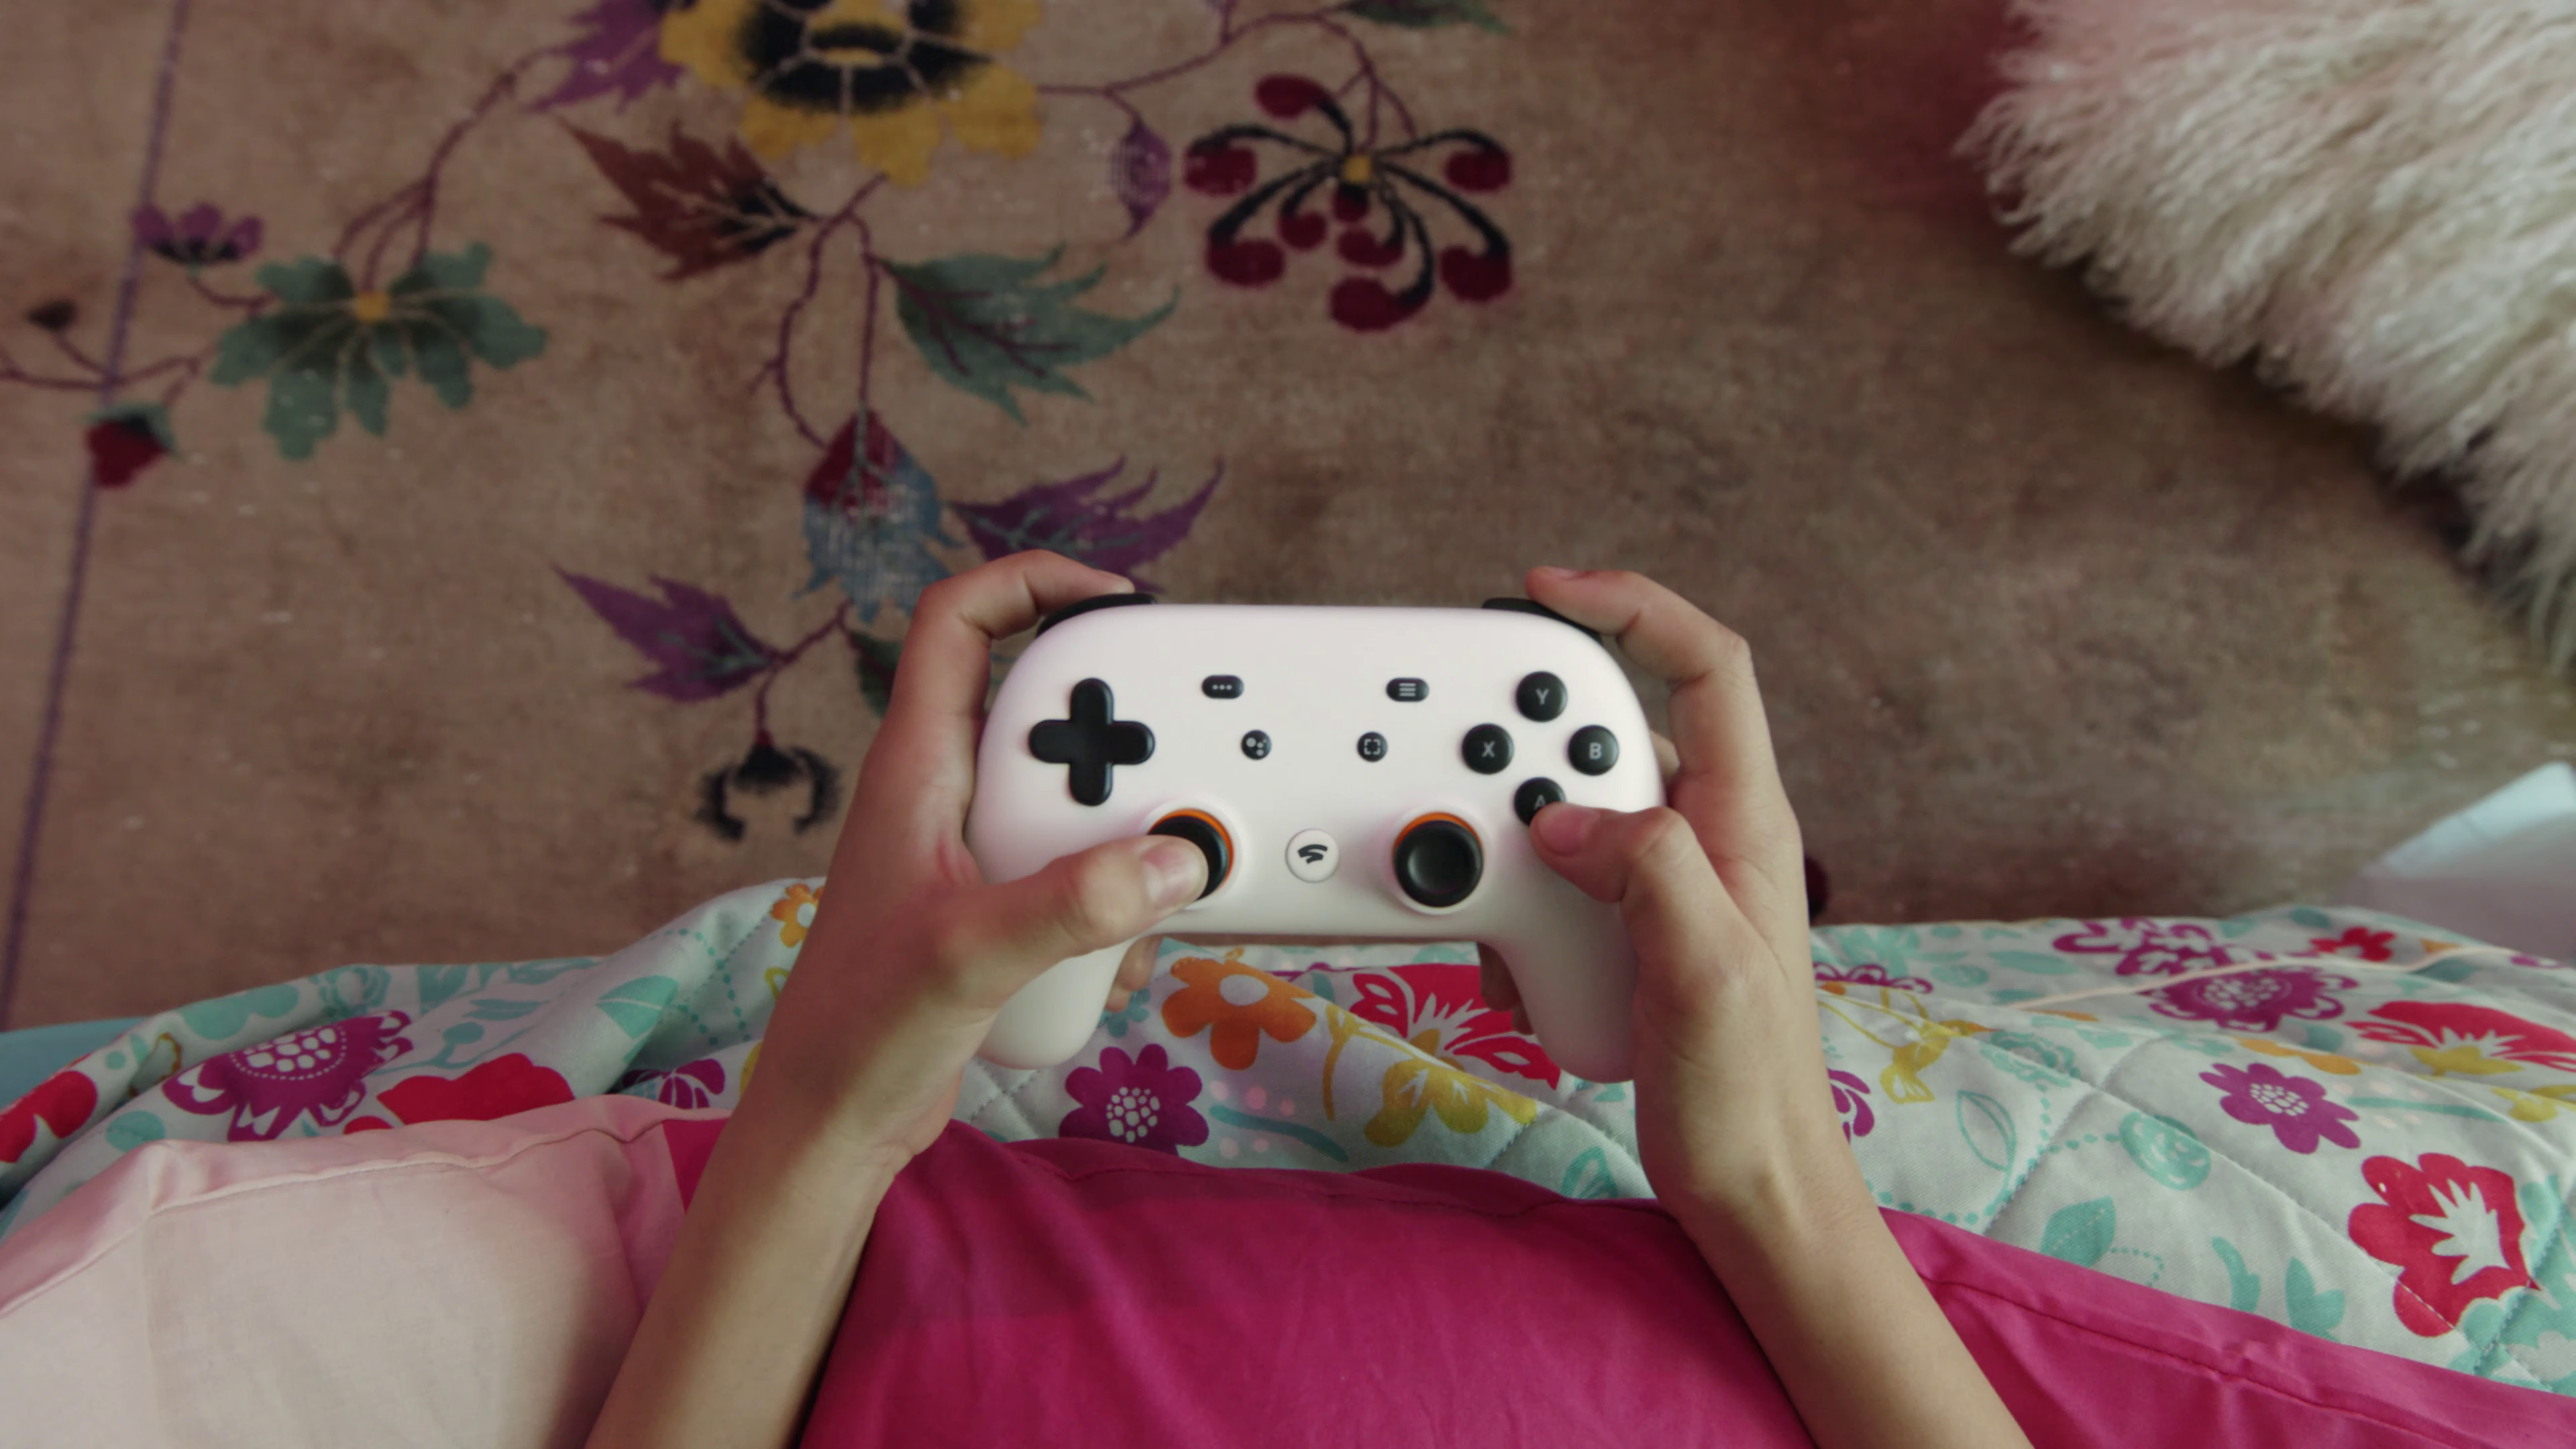 Google Stadia will launch without a bunch of promised features